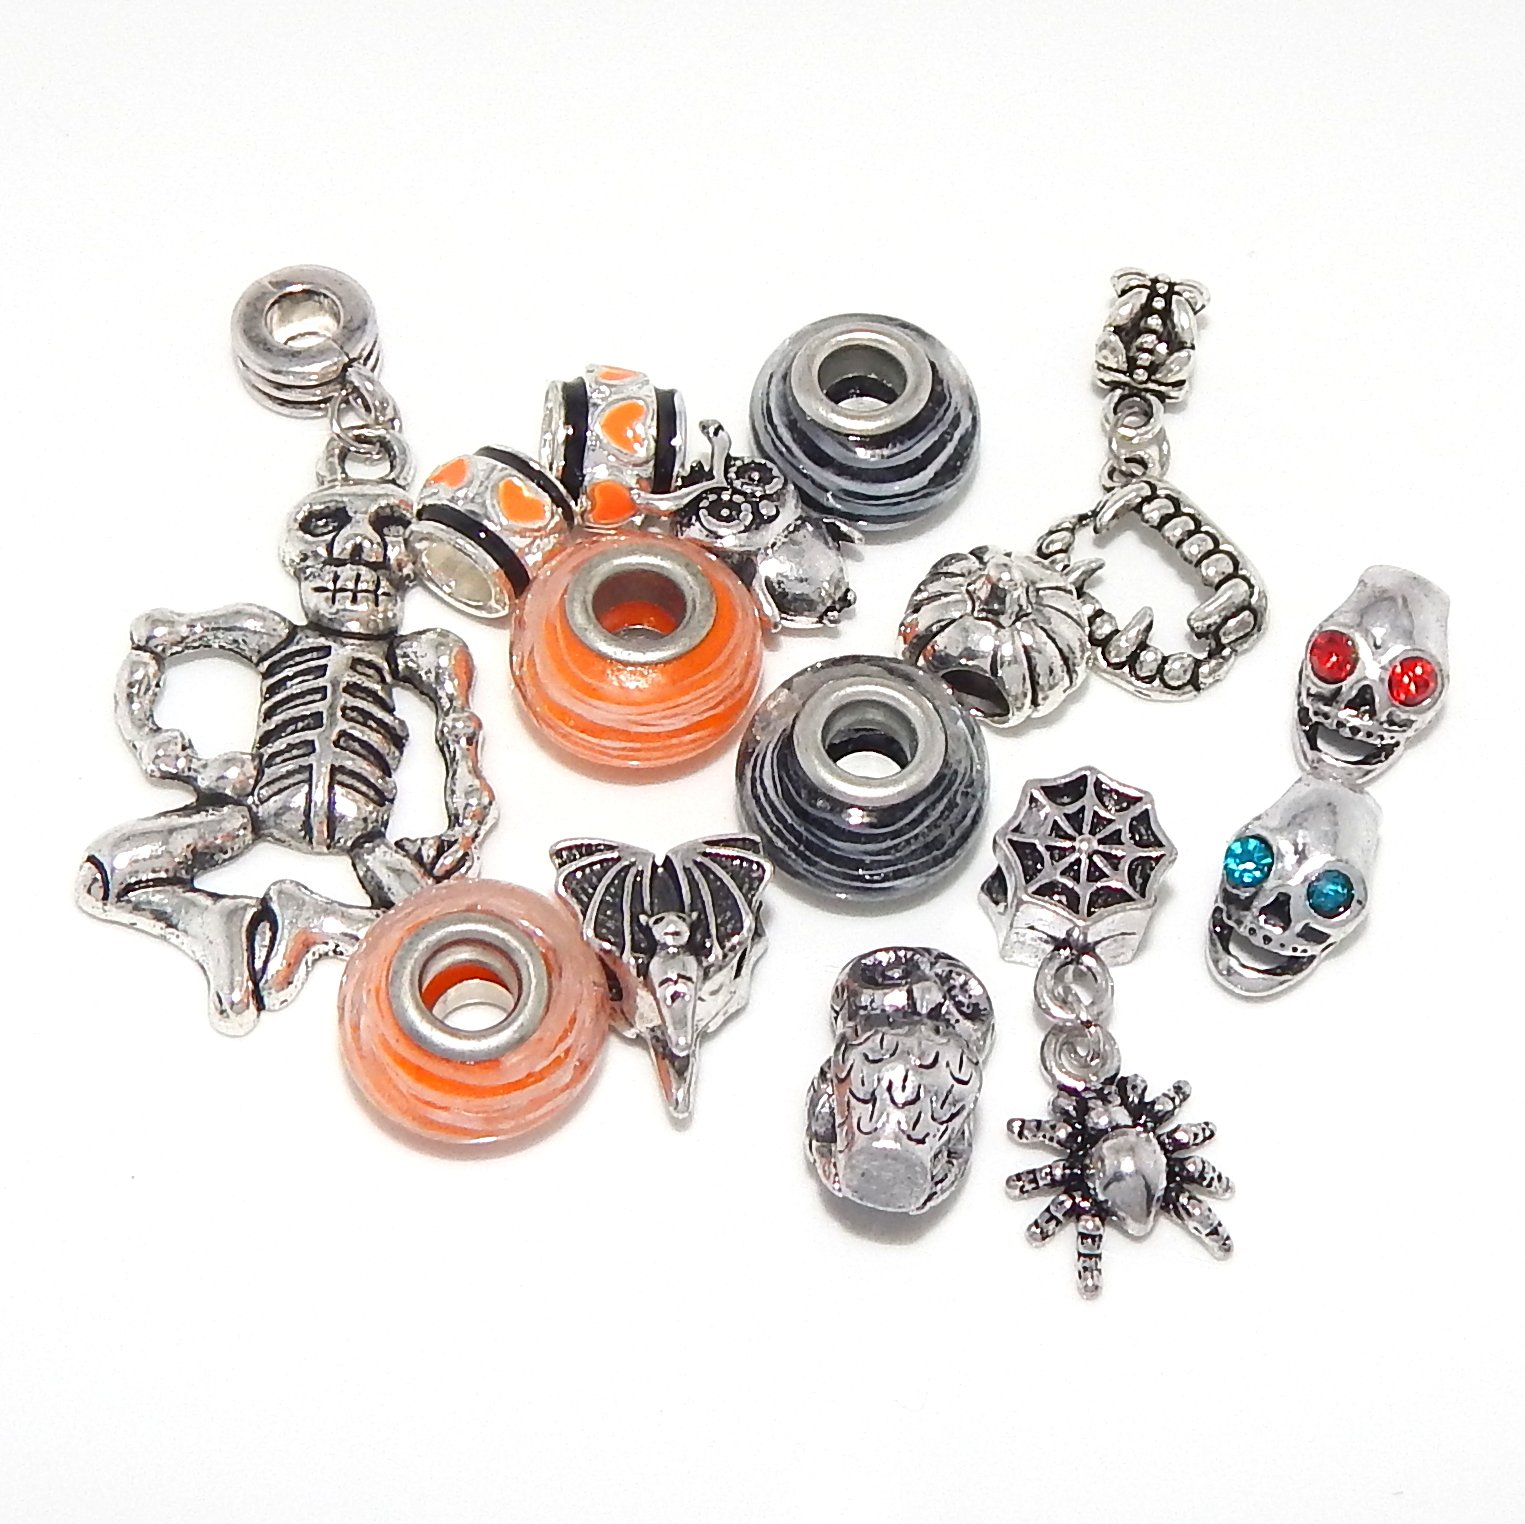 Jewelry Monster -Set of 15- Mixed Metal and Glass Halloween Charm Beads